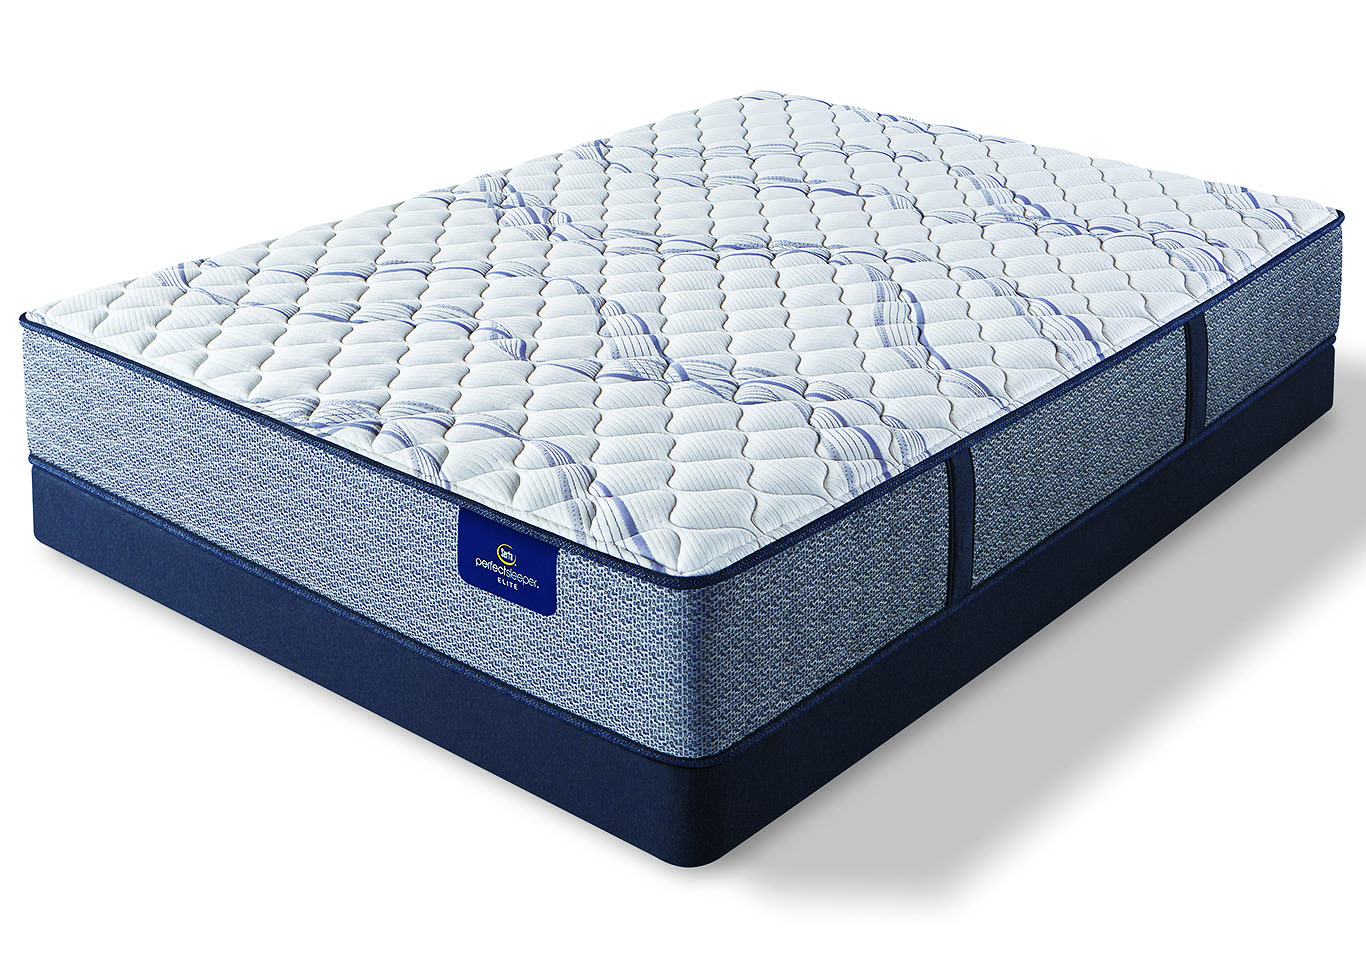 Trelleburg II Extra Firm Queen Mattress,Huffman Koos